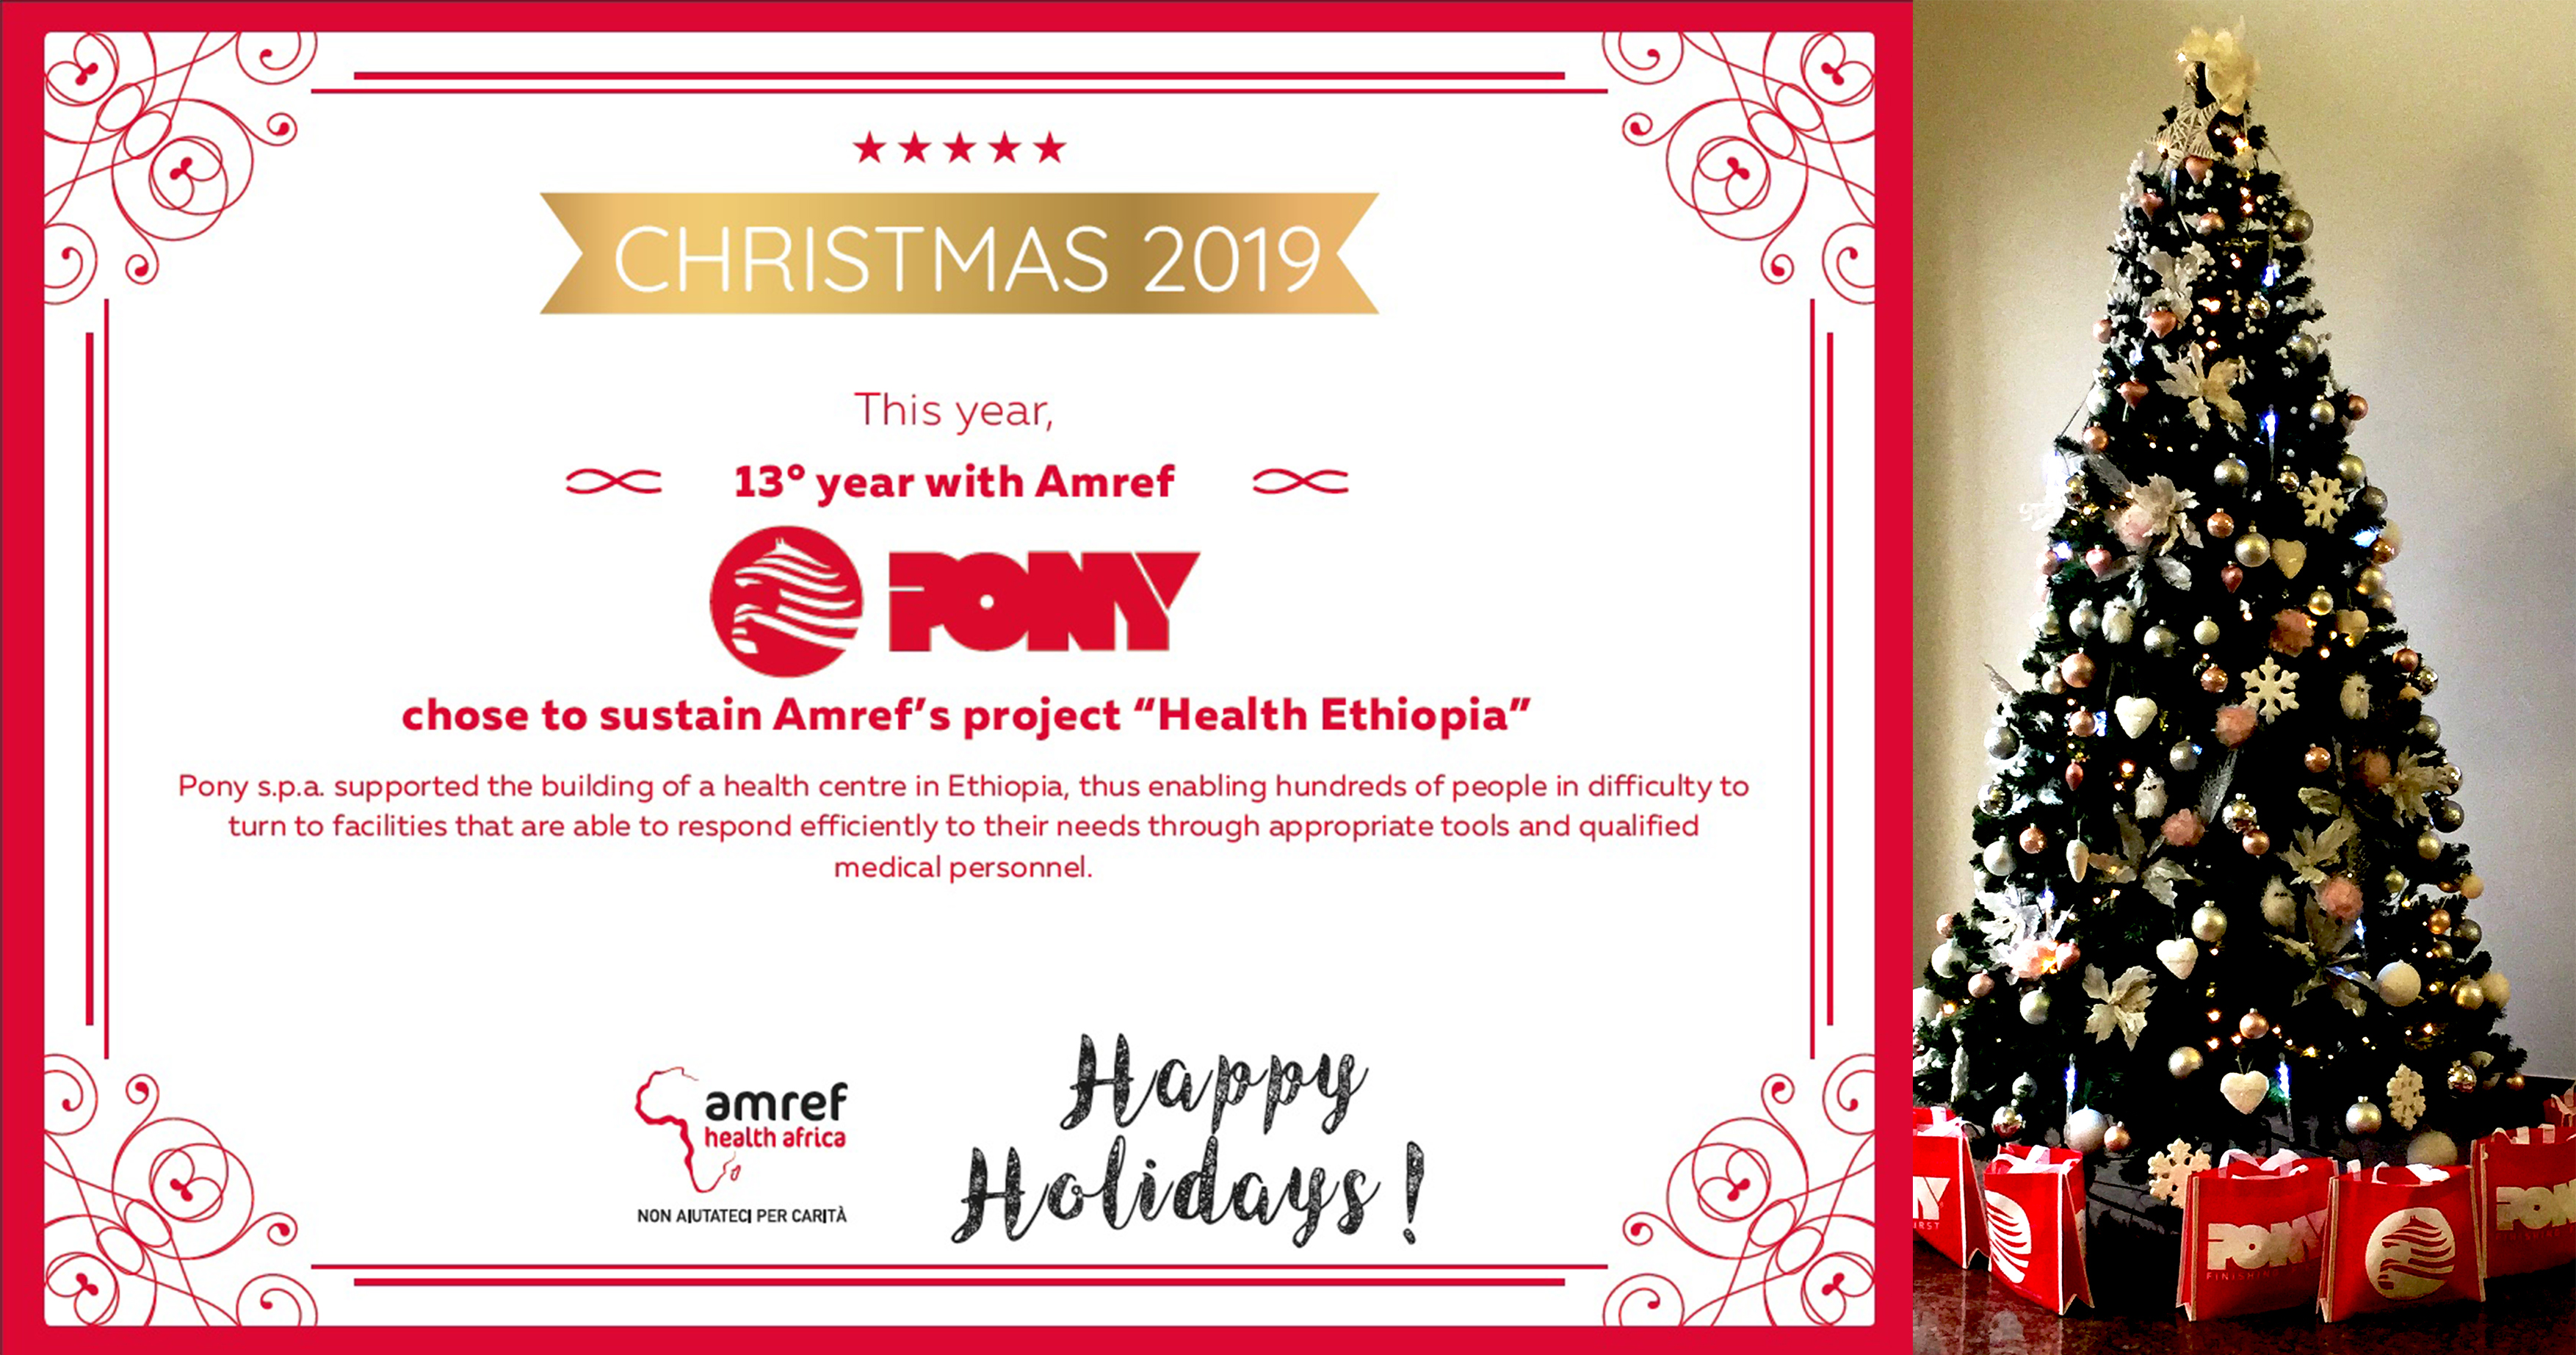 MERRY CHRISTMAS FROM PONY AND AMREF